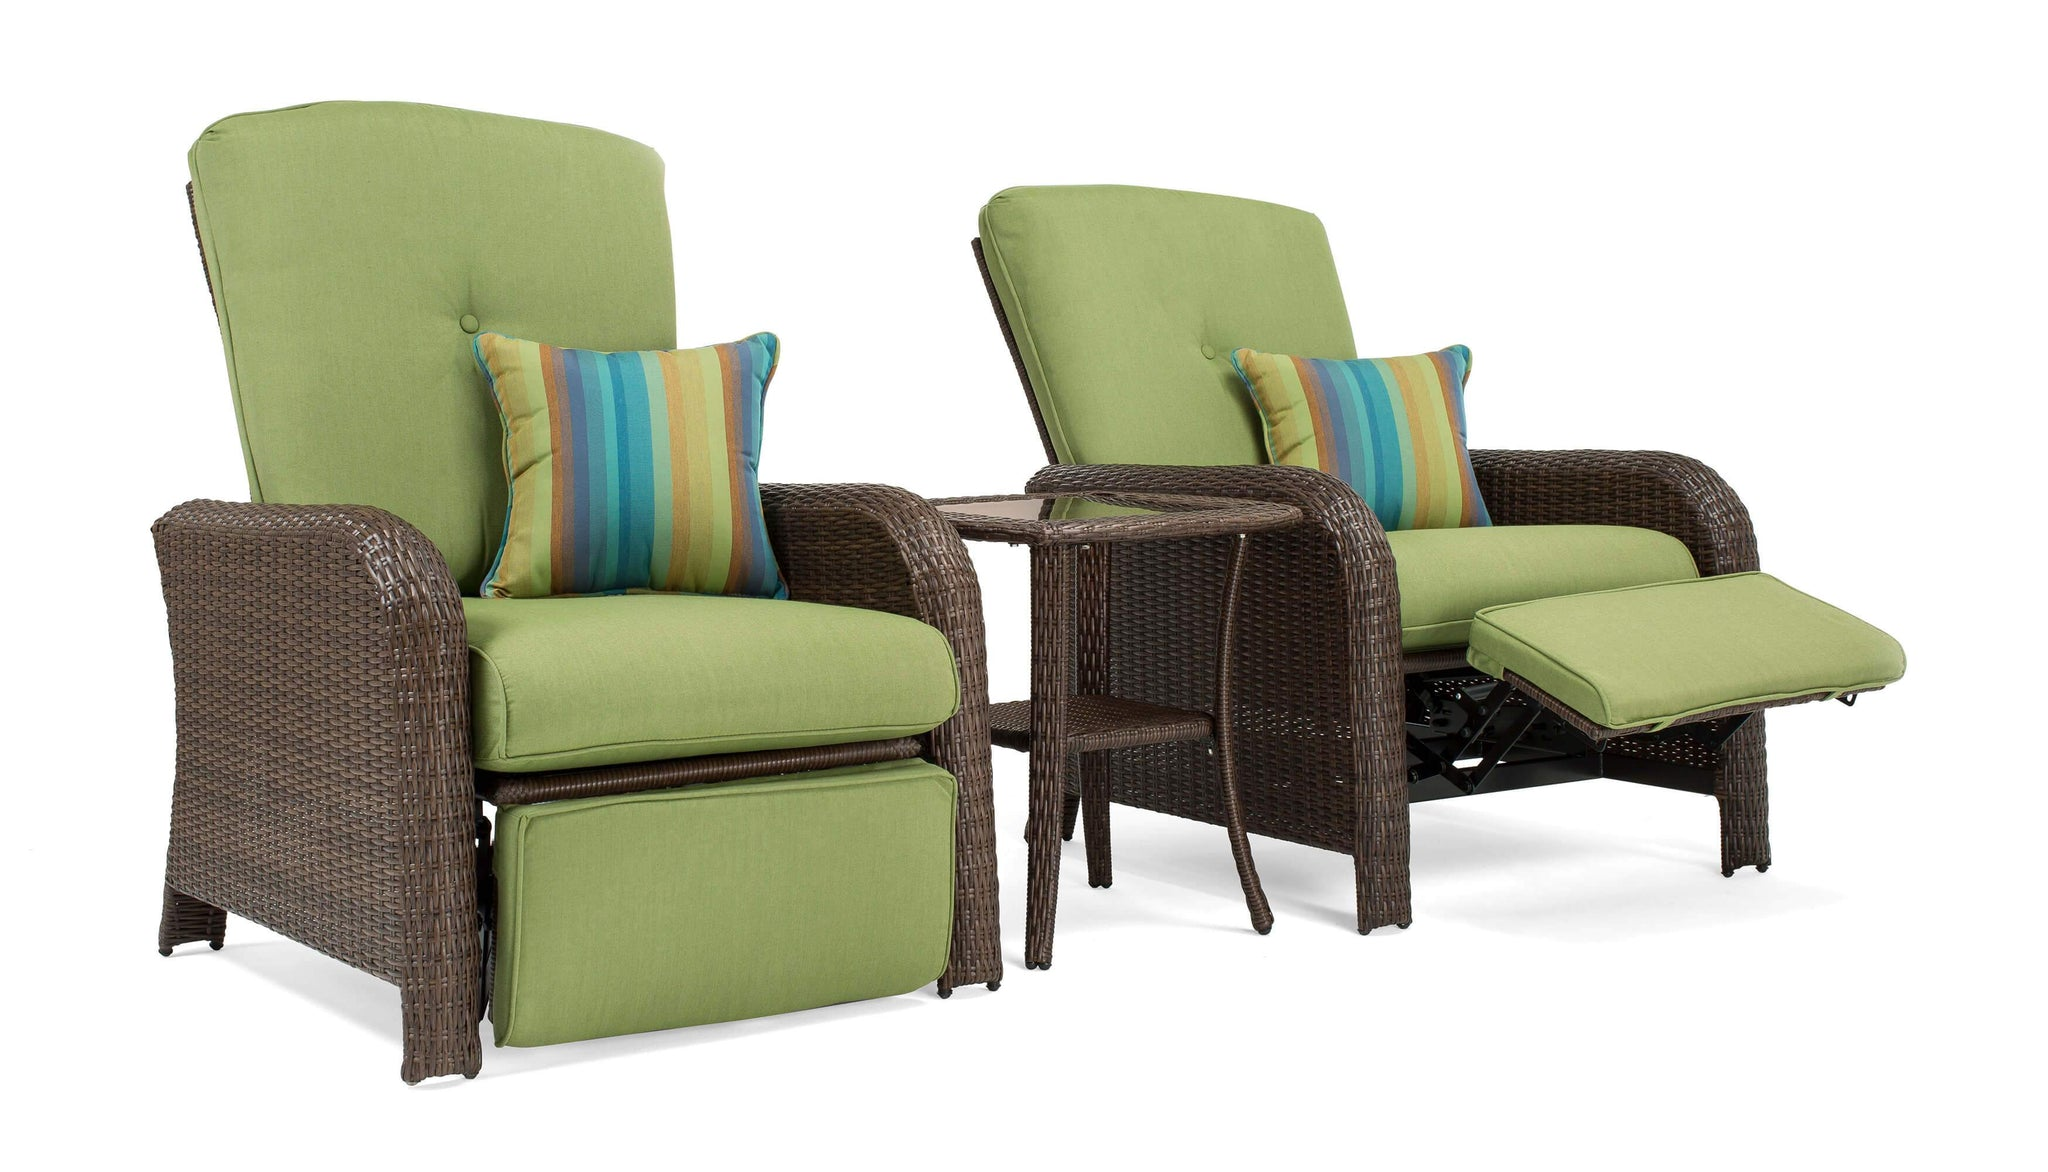 Recliner chair green - Sawyer Patio Recliner Set Includes 2 Recliners And Side Table Cilantro Green